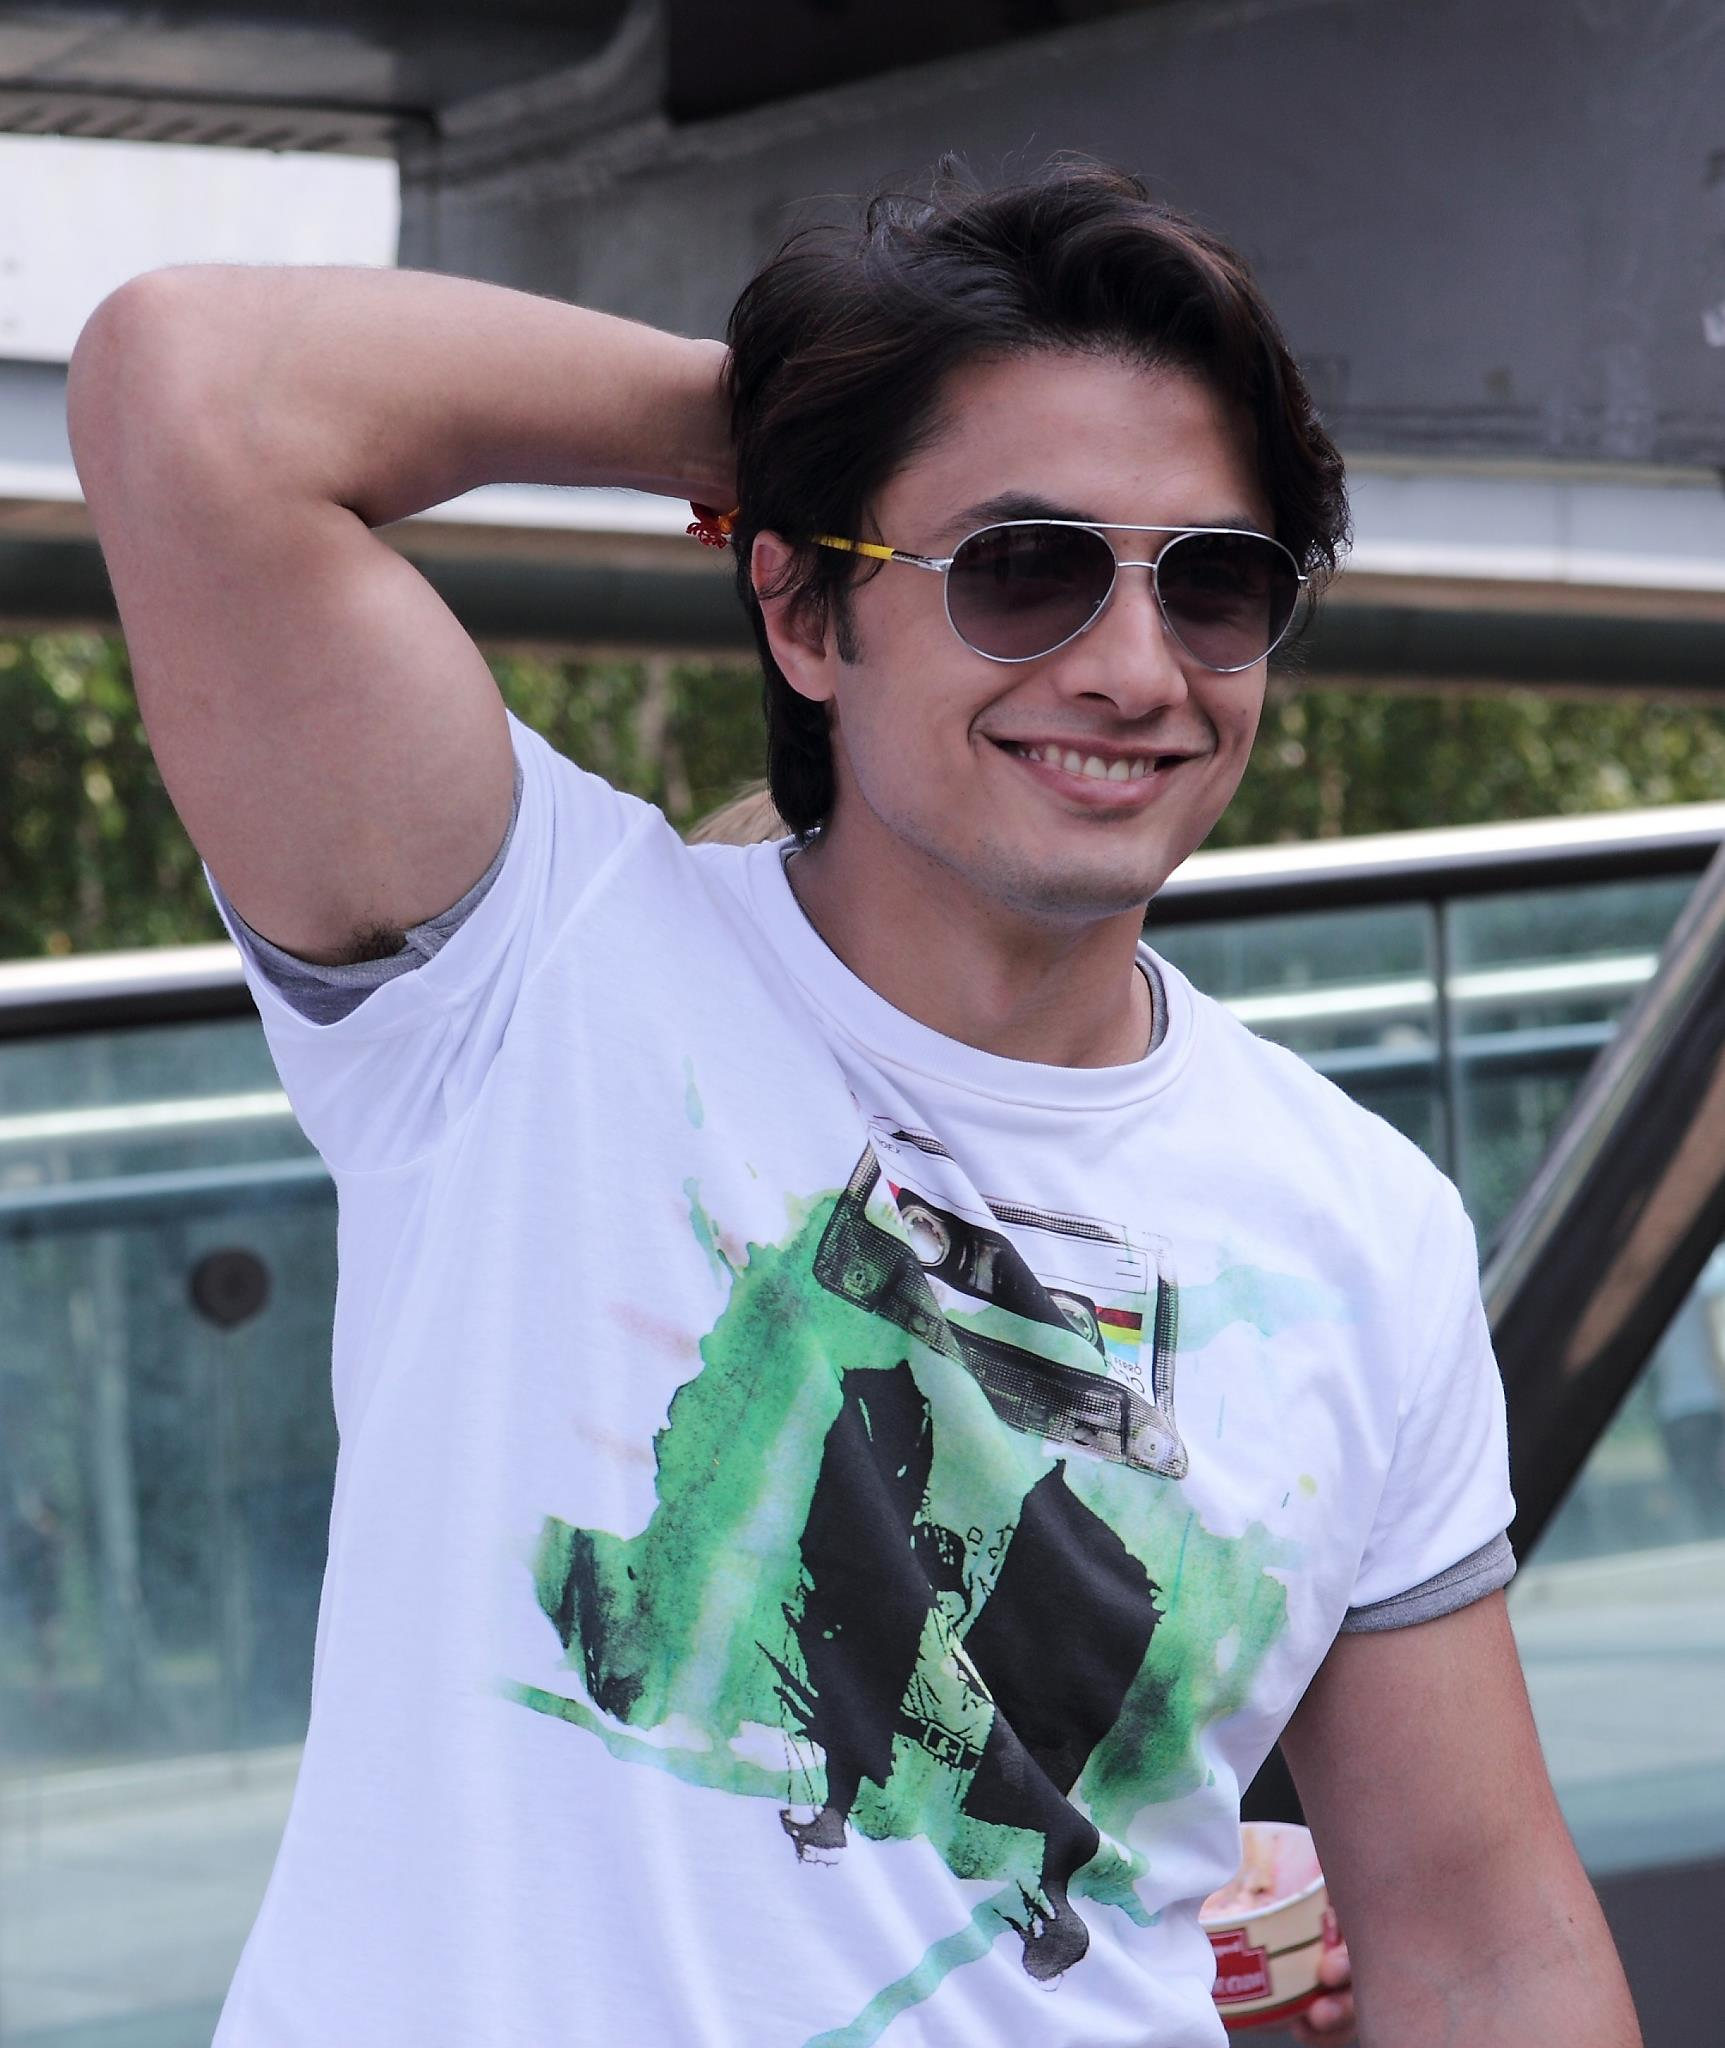 Ali Zafar Sexiest Asian Man 2012